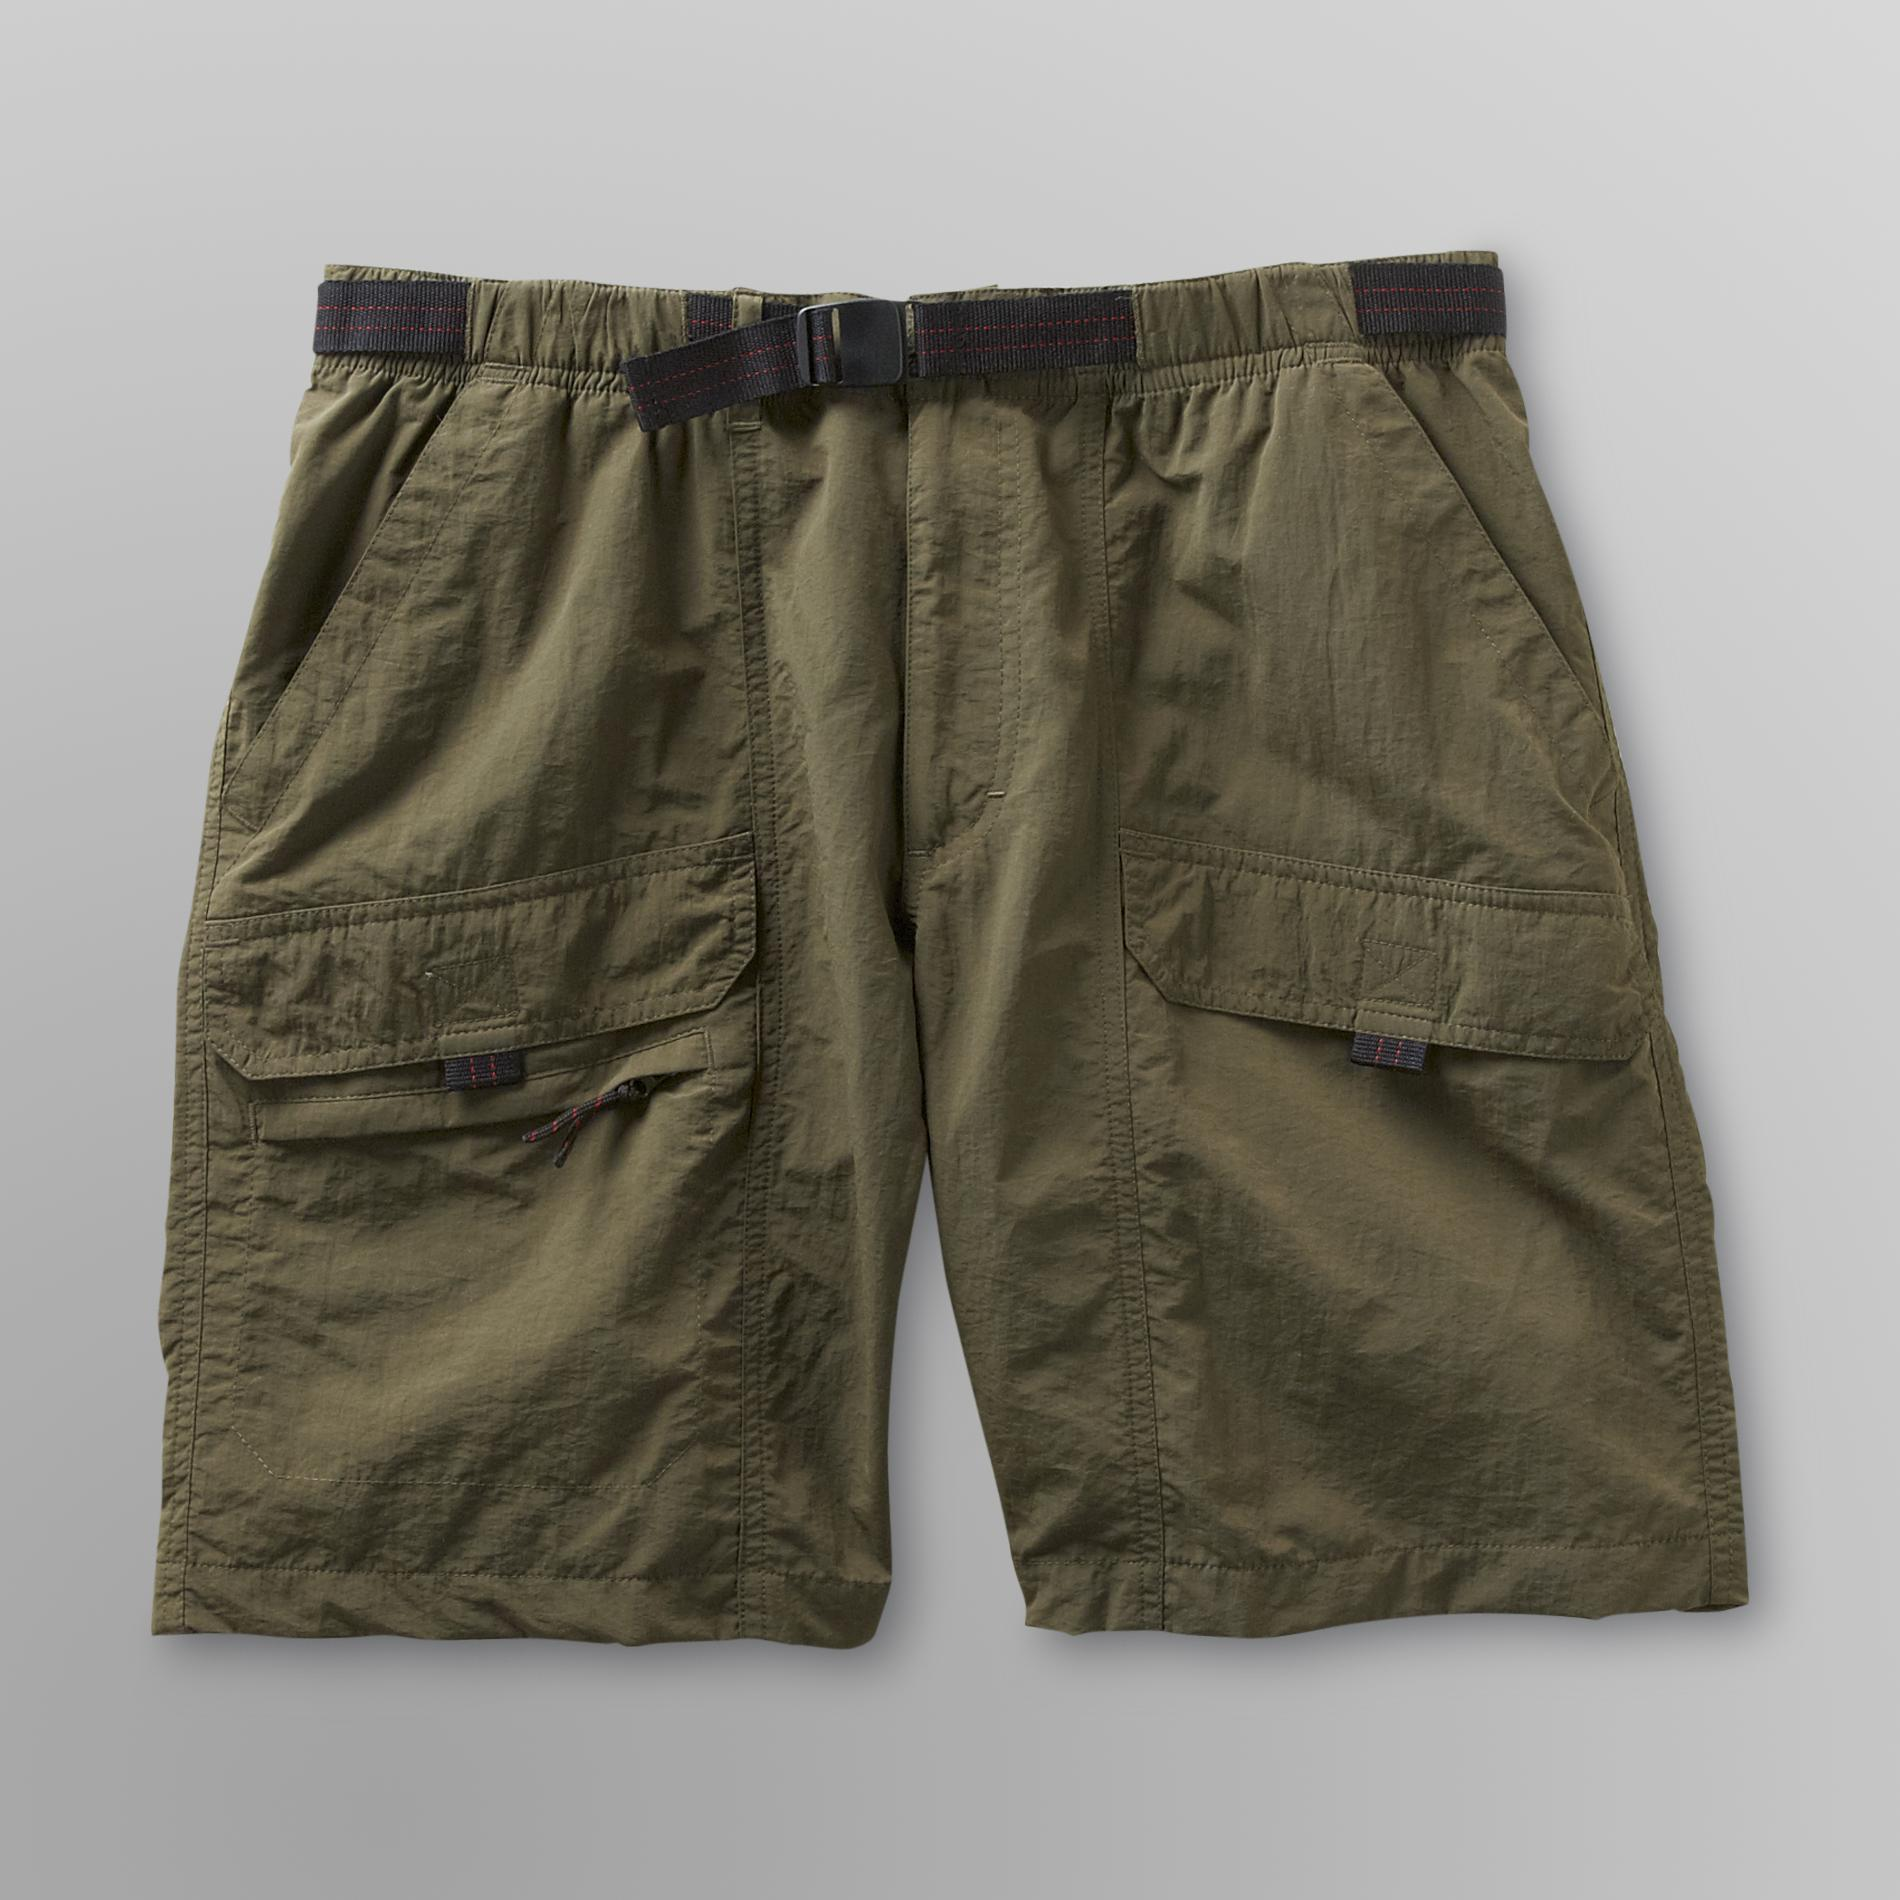 Basic Editions Mens Packable Cargo Shorts